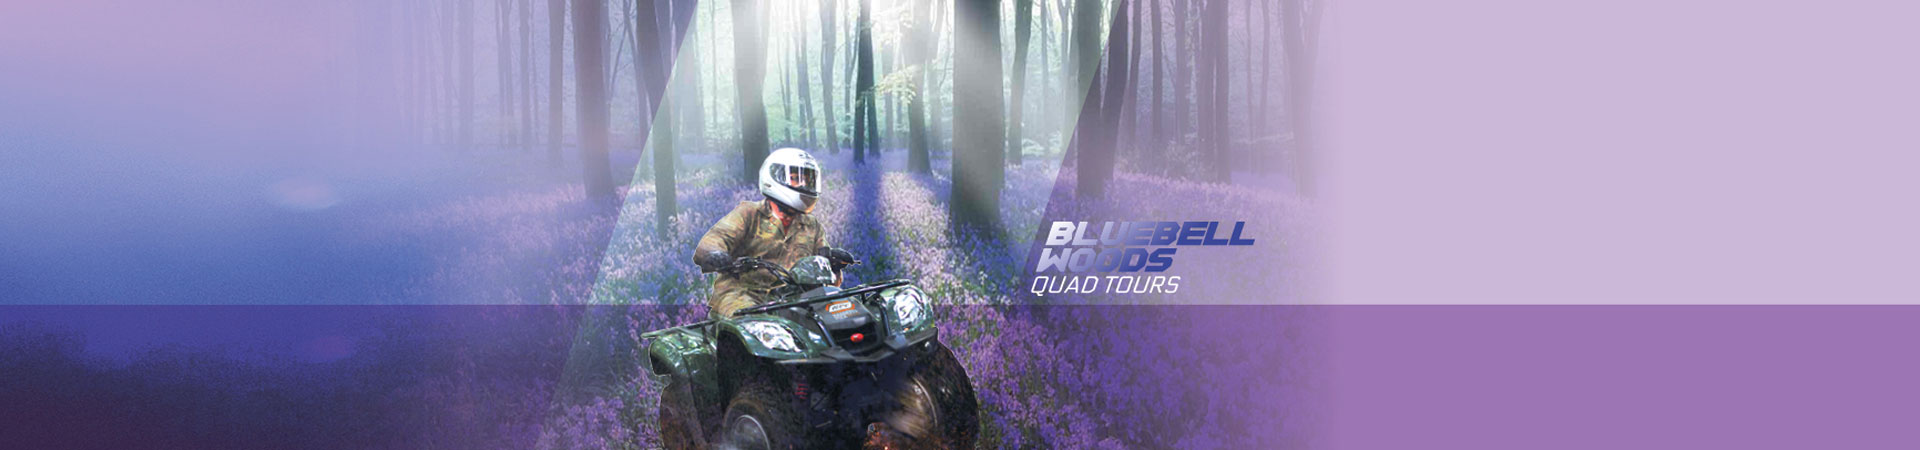 bluebell quad tours